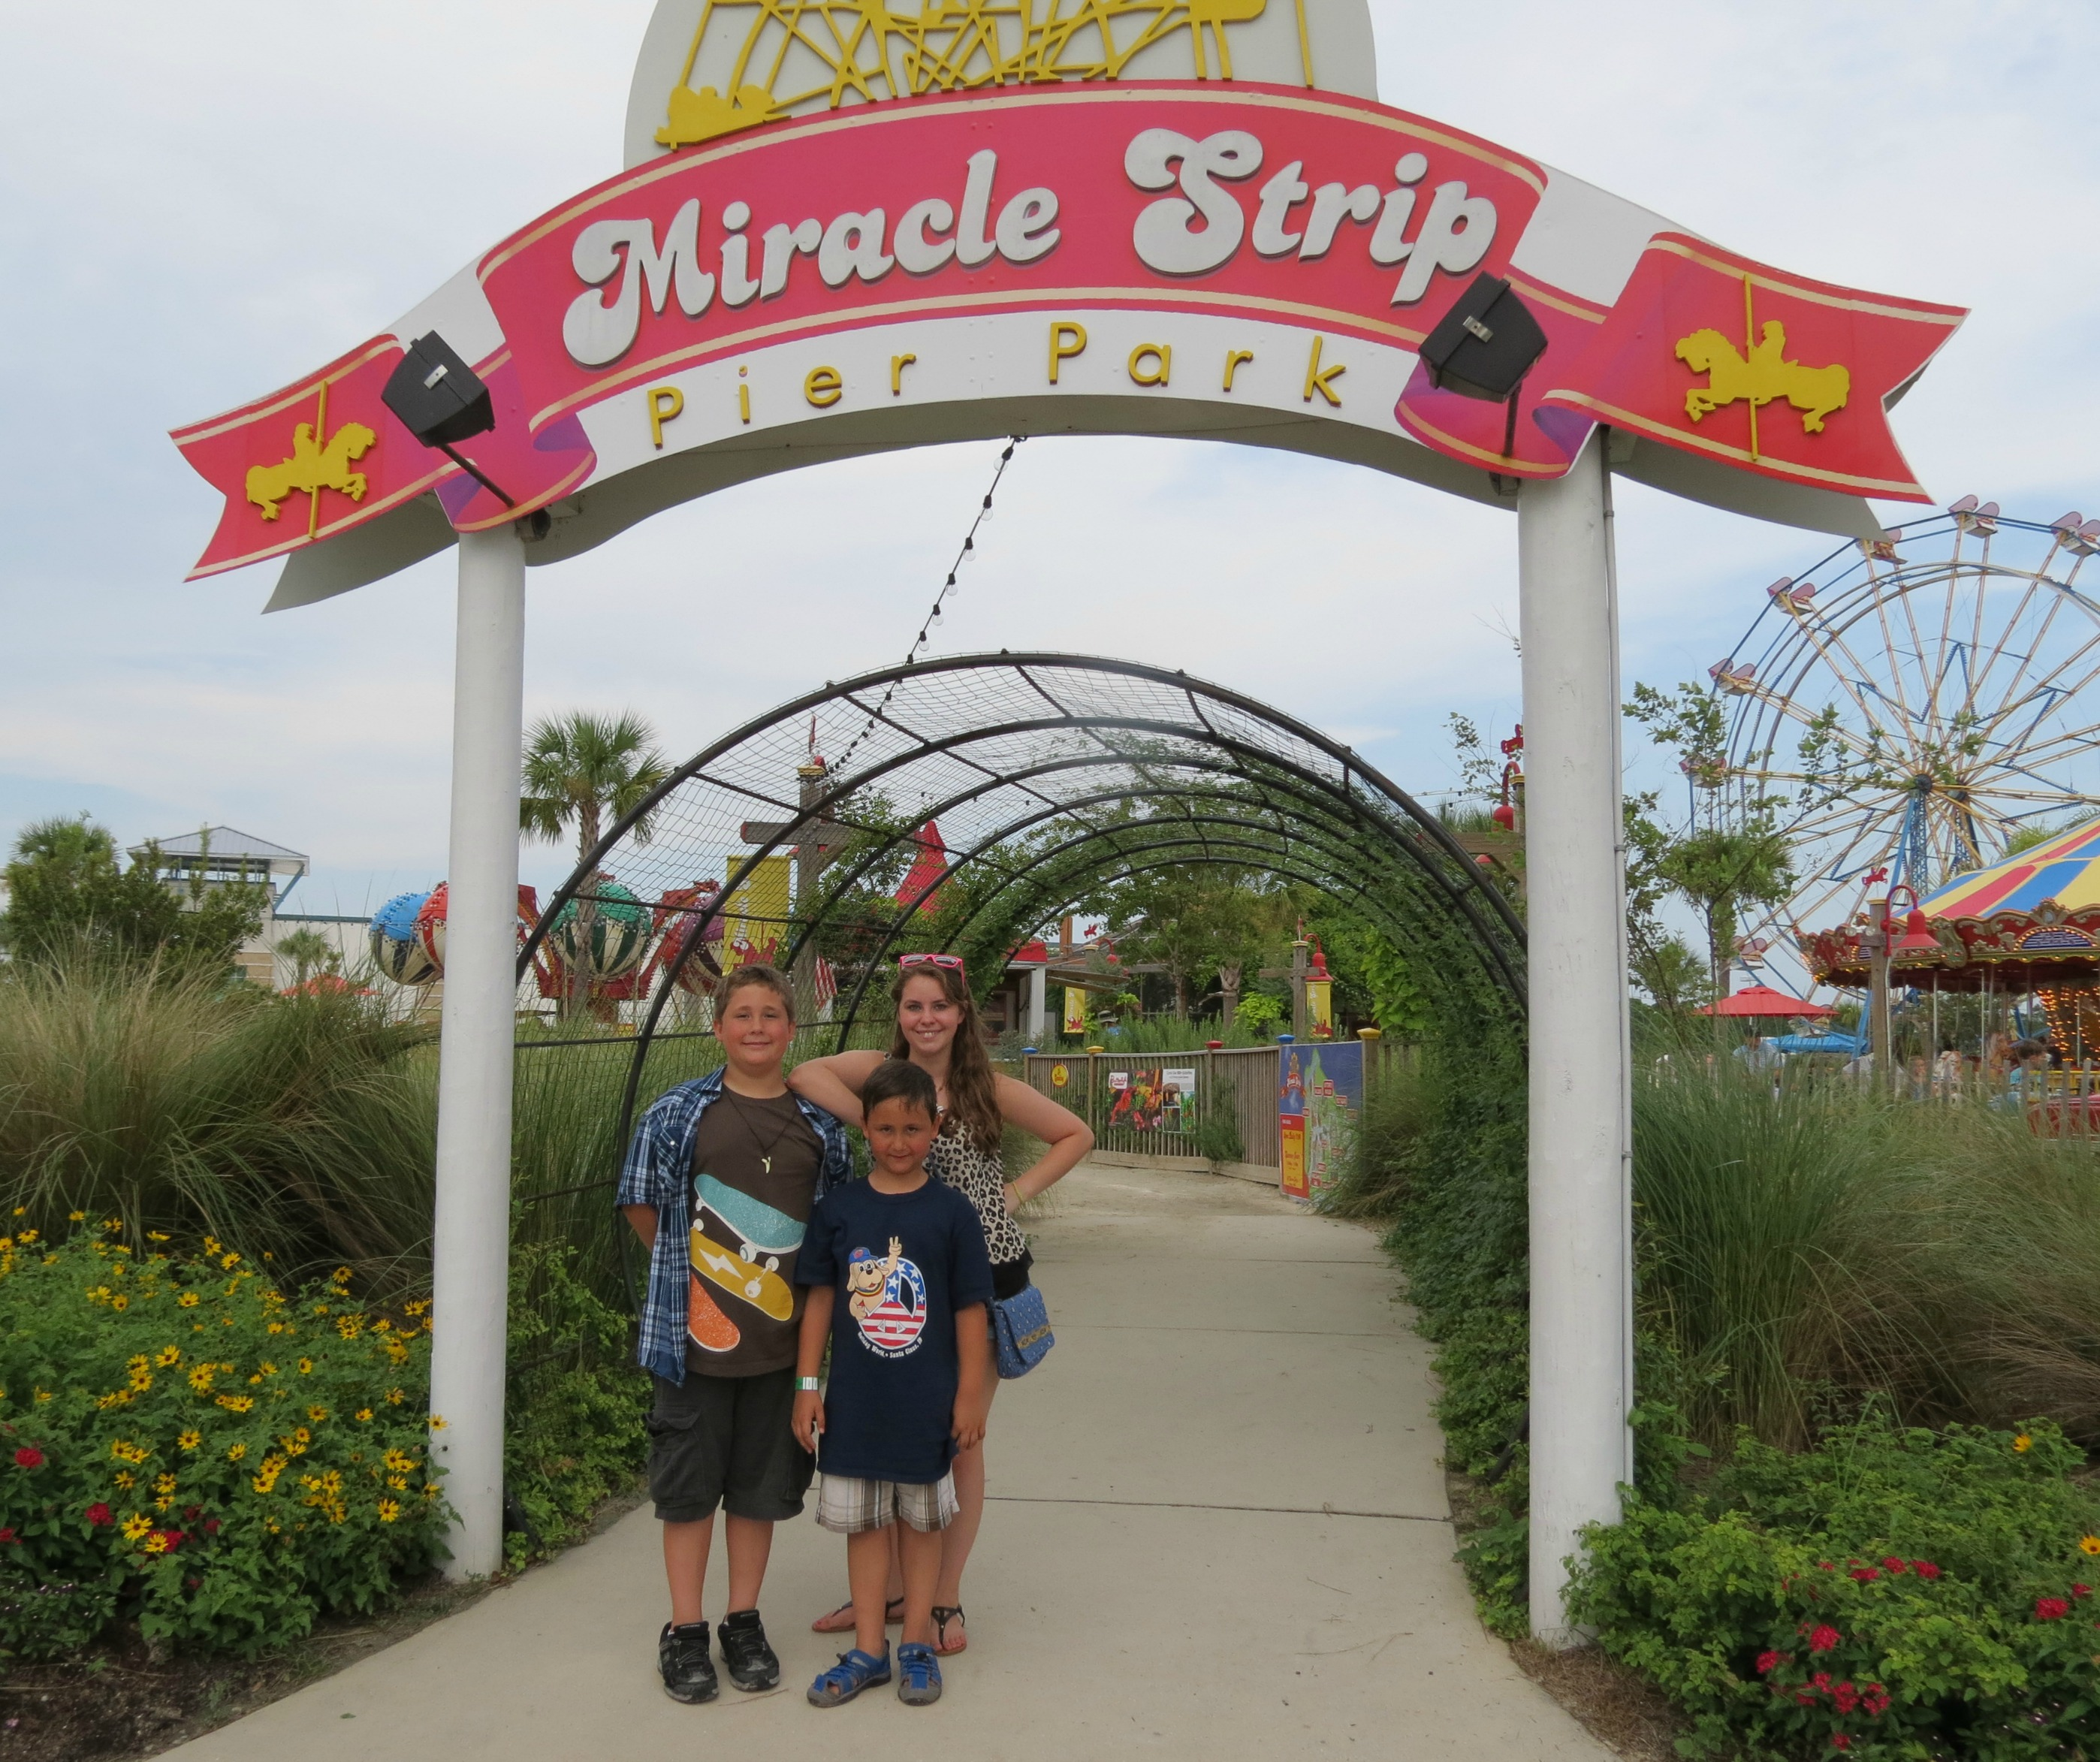 Place miracle strip in florida